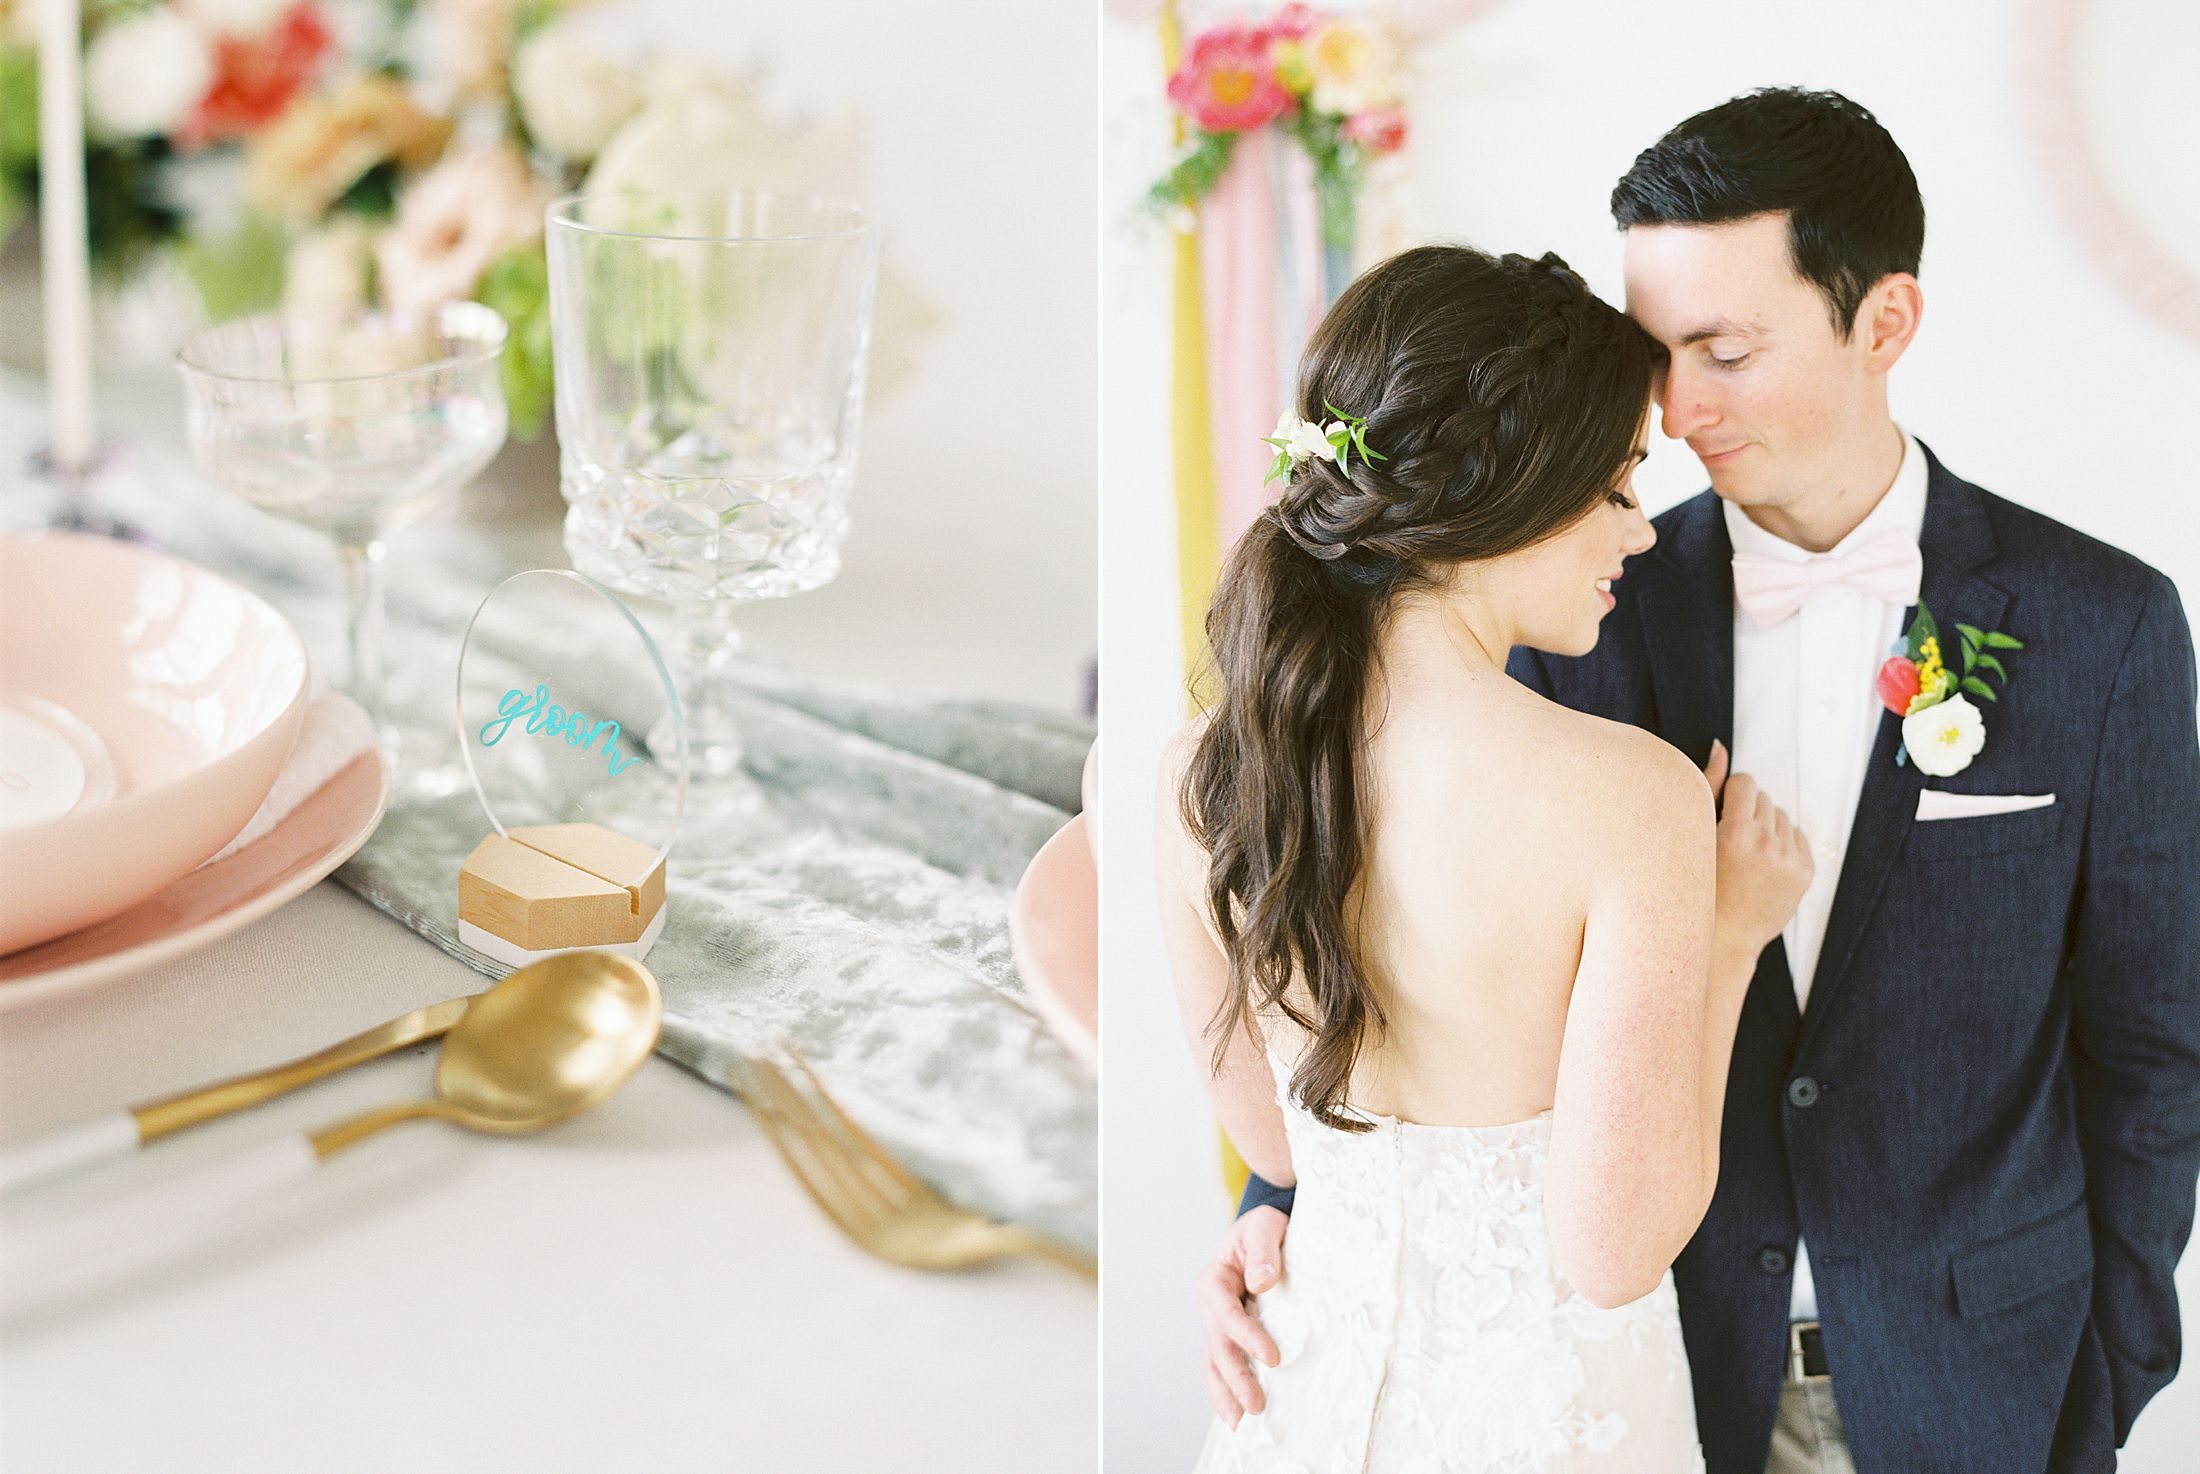 Bay Area Spring Wedding Inspiration - Ashley Baumgartner - Inspired By This - Party Crush Studio and Lens of Lenox Videography - Bay Area Wedding Photography_0035.jpg